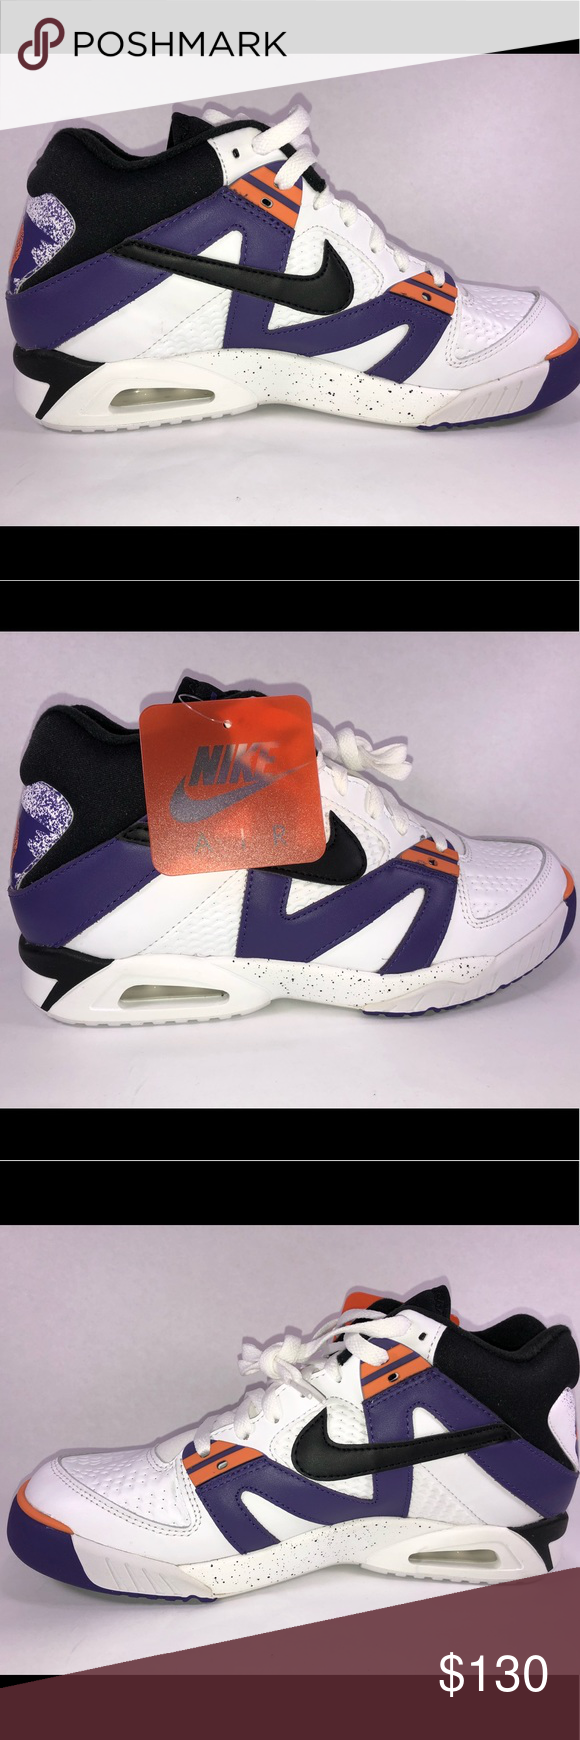 timeless design 93bfa 89653 Nike Air Tech Challenge 3 OG Andre Agassi Sneakers New Without Box Never  Been Worn See Pictures For Details. Nike Air Tech Challenge 3 Agassi Club  Voltage ...